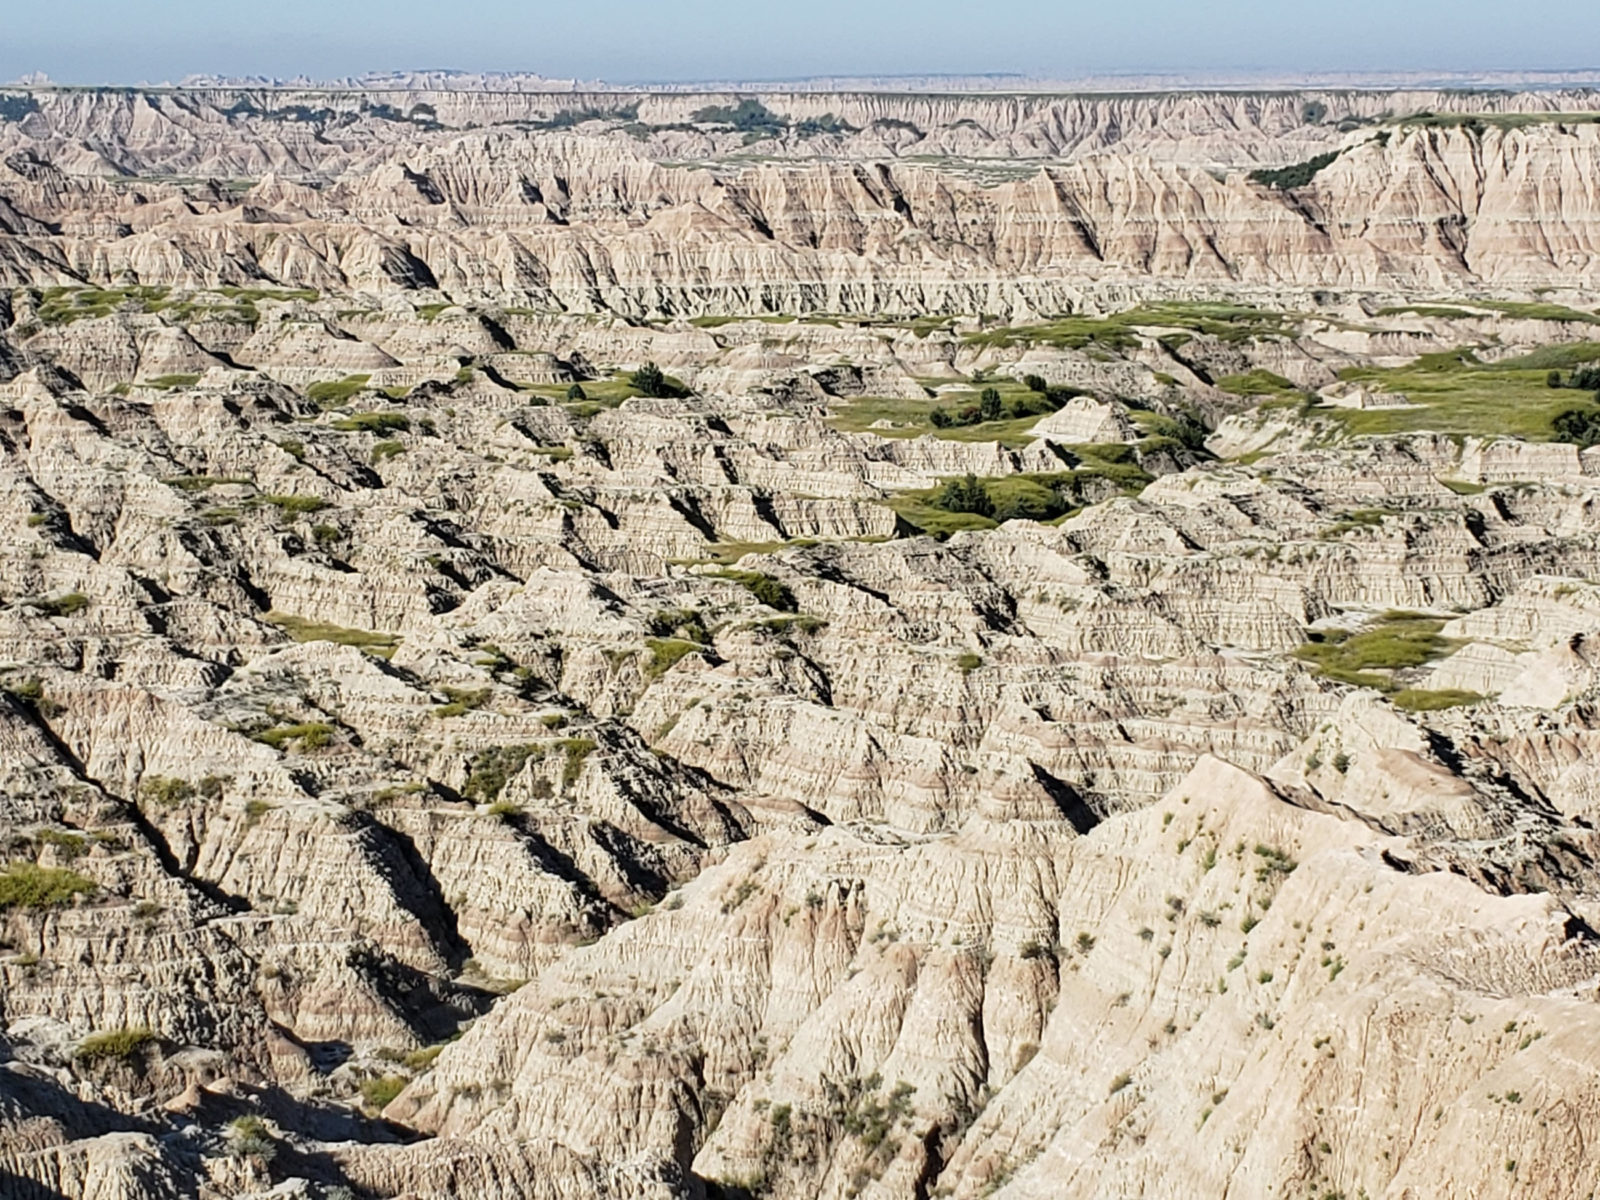 Badlands striped rock formations